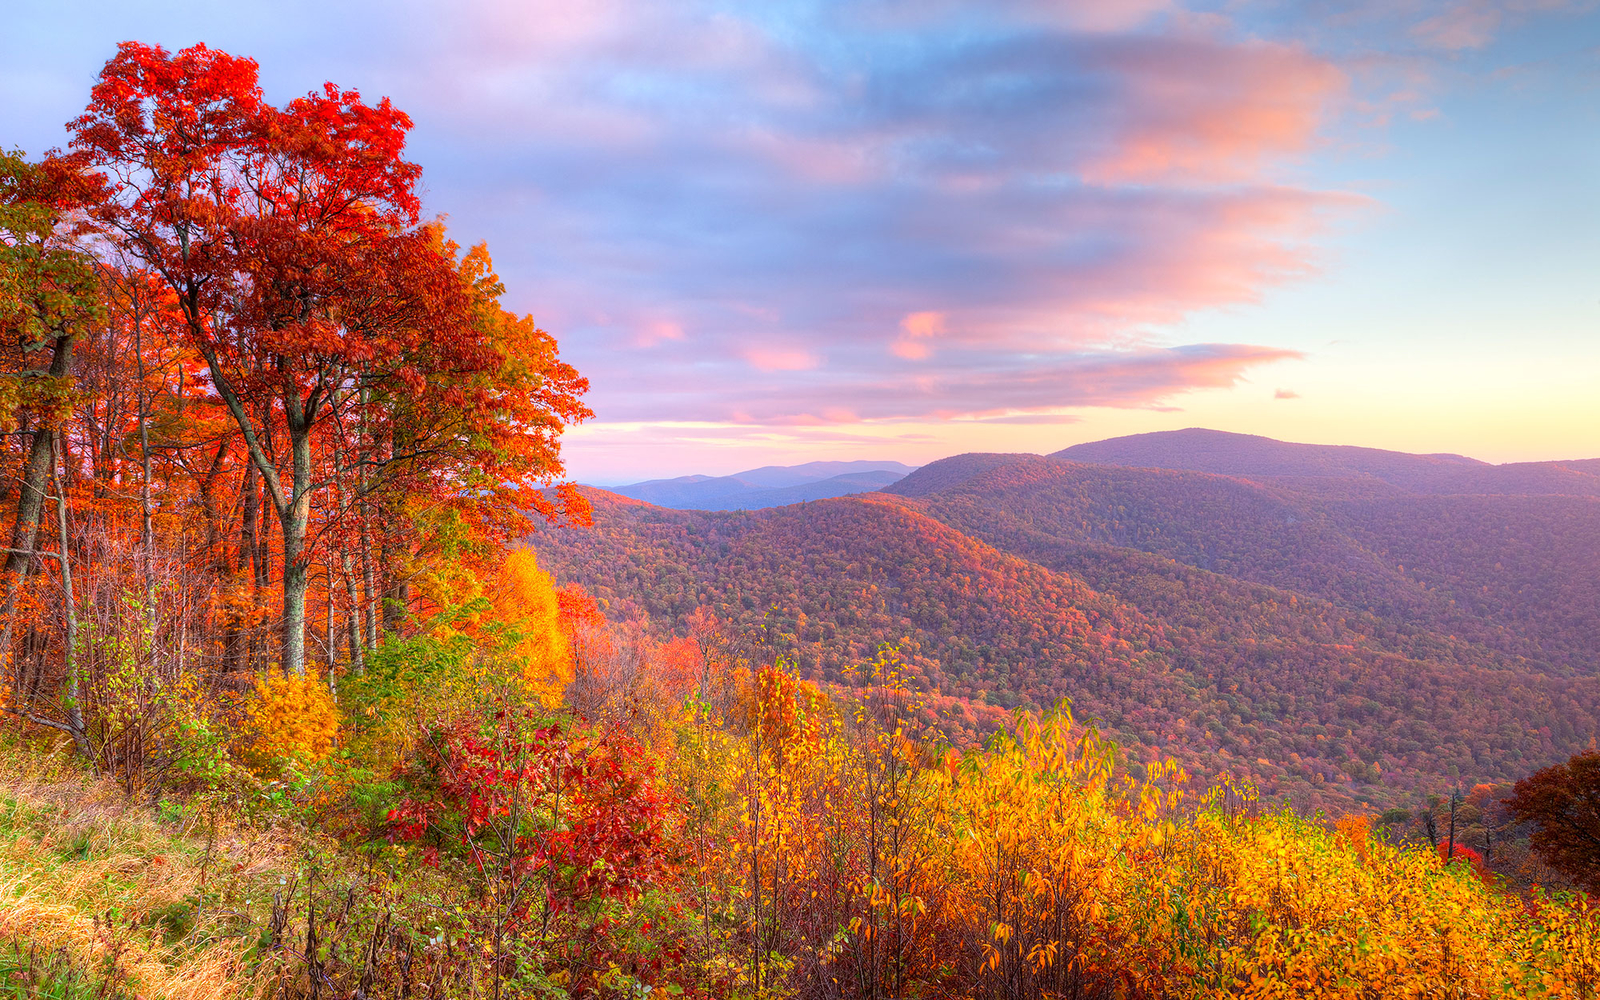 Wallpaper Images Of Fall Trees Lined Lake Best Fall Destinations Besides New England Travel Leisure